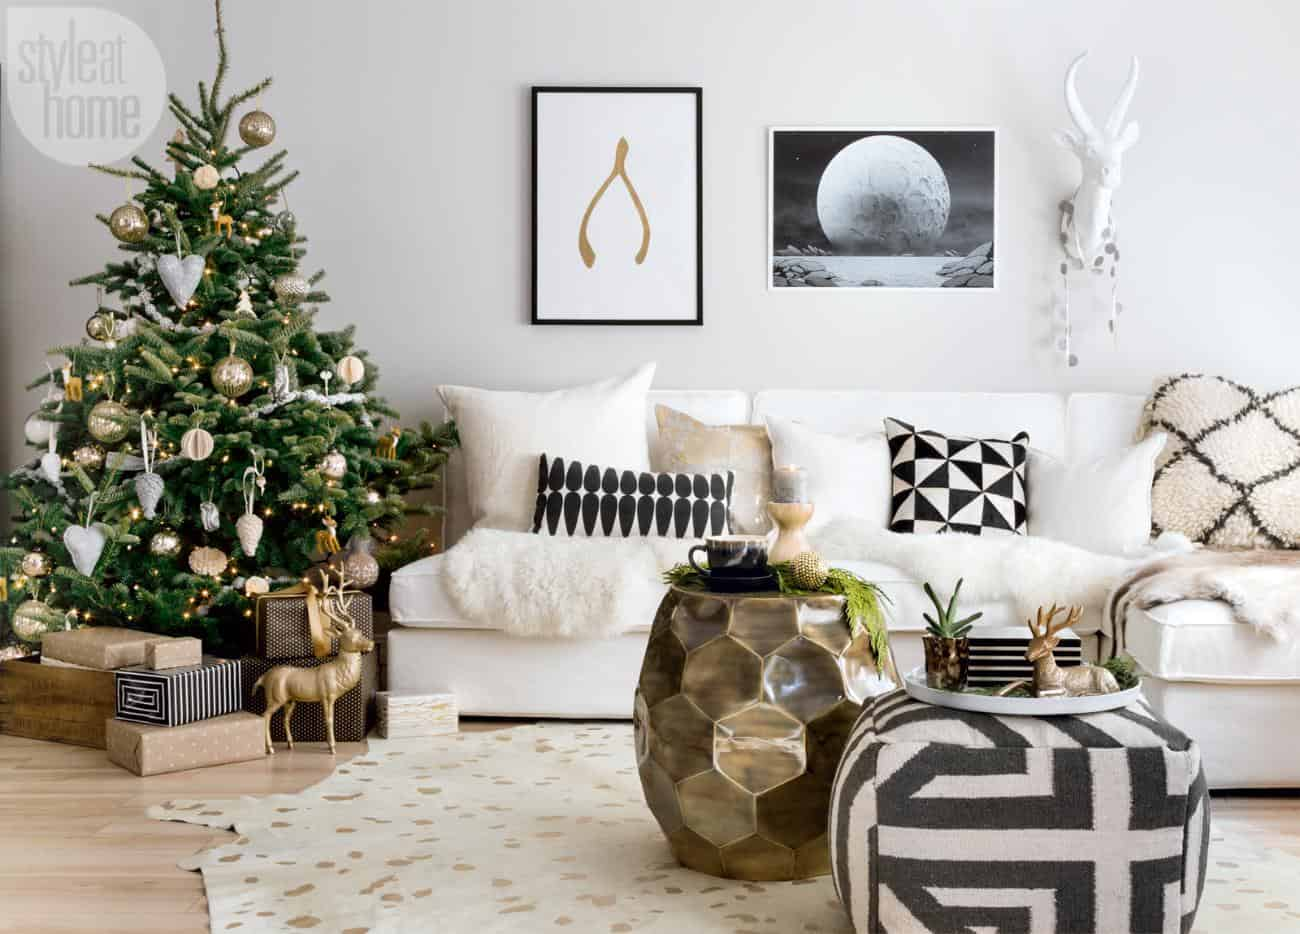 Christmas home in Ontario infused with Scandi-chic style